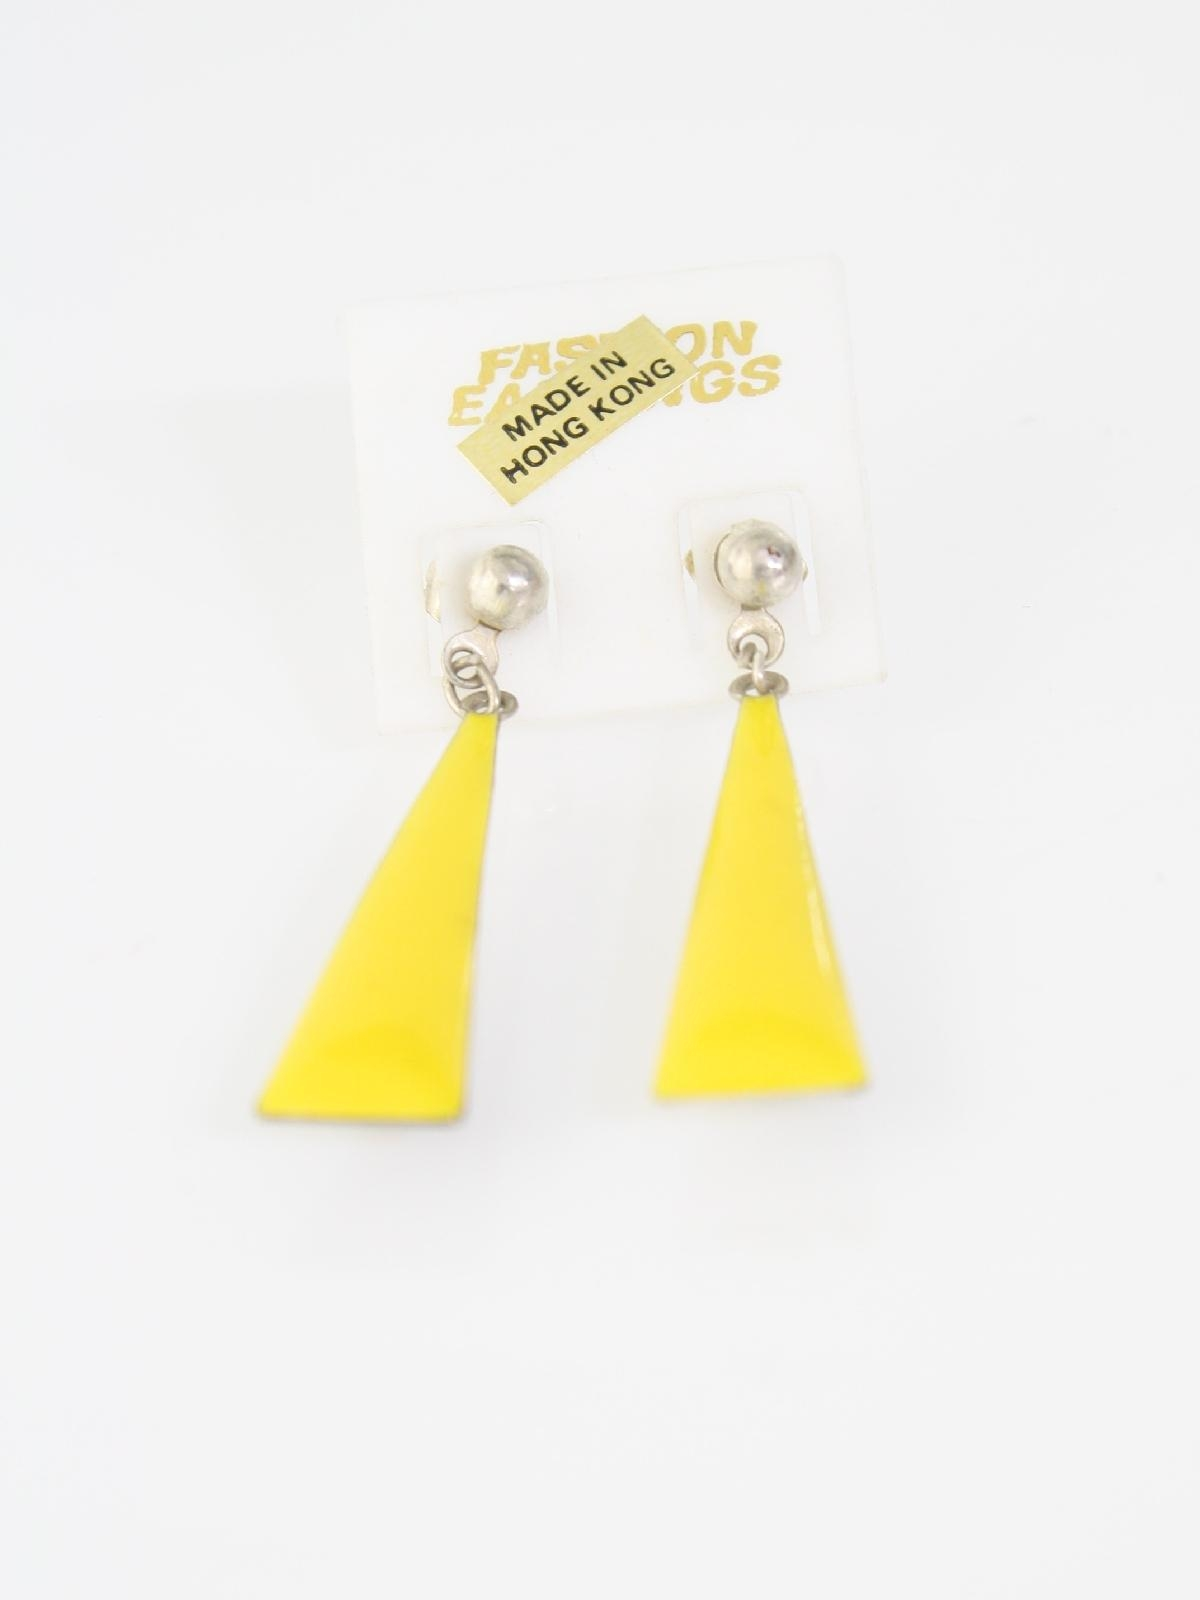 1980 S Made In Hong Kong Womens Jewelry Totally 80s Earrings 8 00 Not Stock Item No 343486 N1261